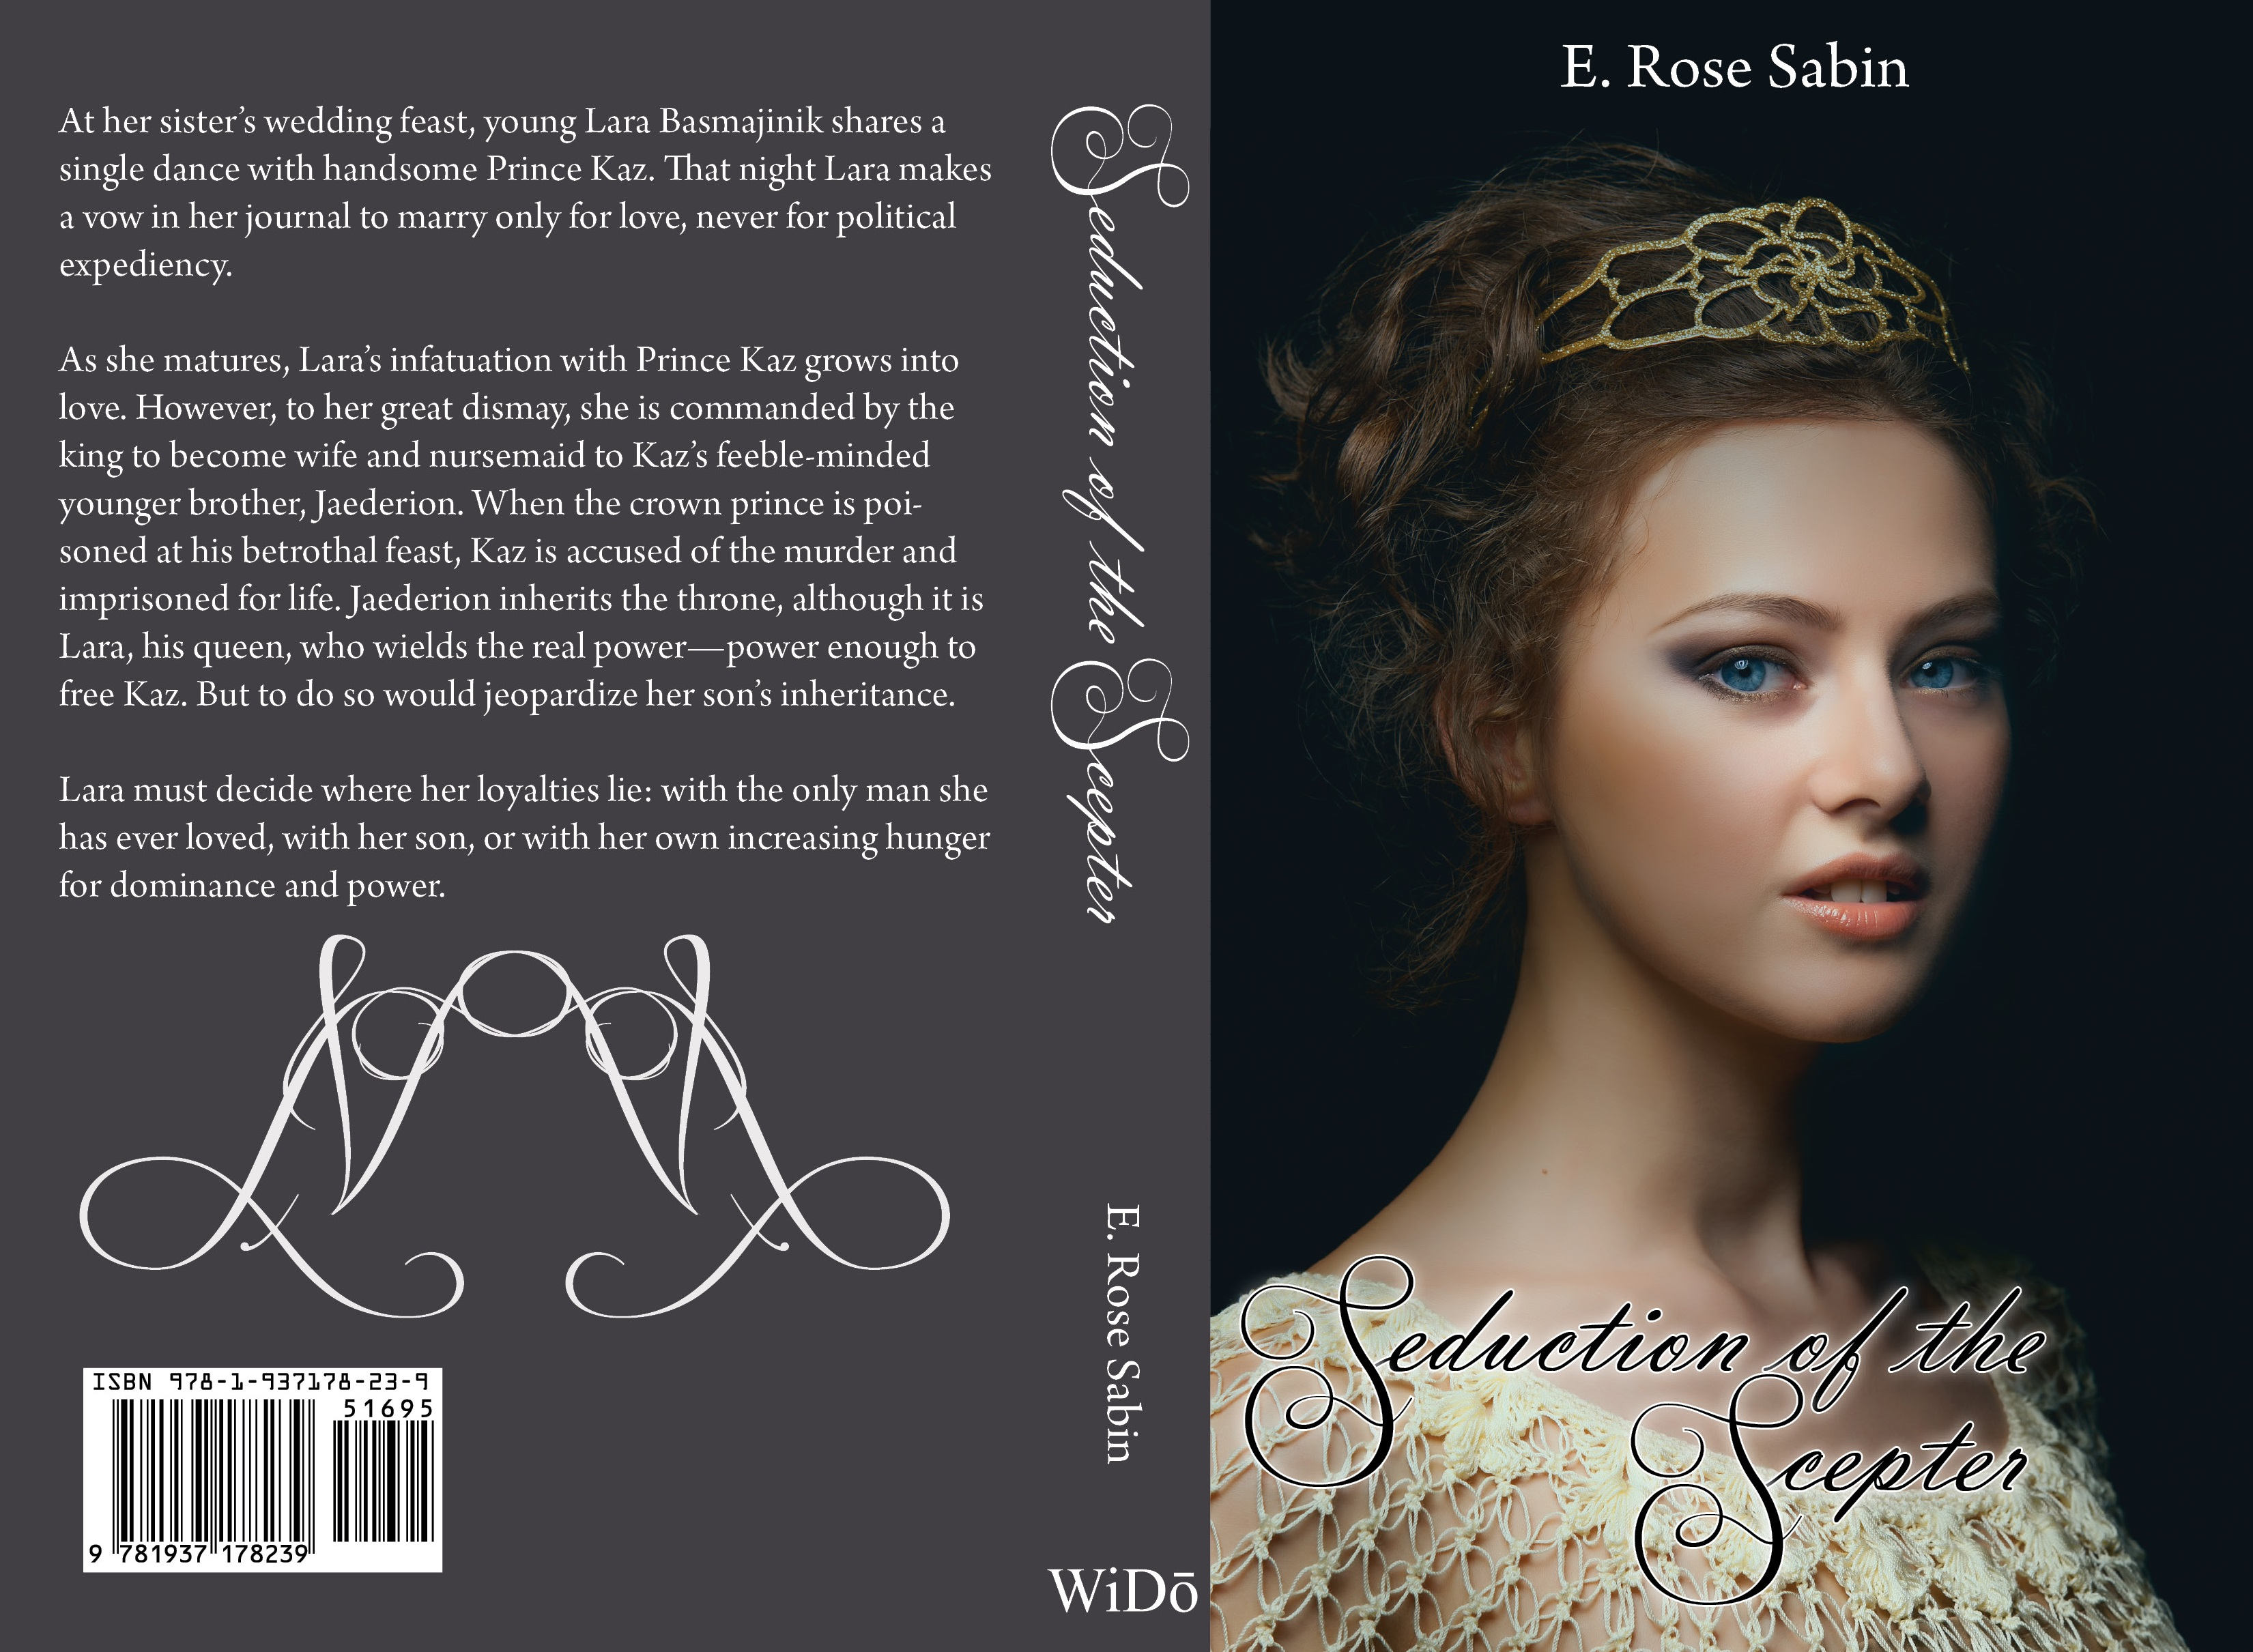 Seduction of the Scepter by E. Rose Sabin